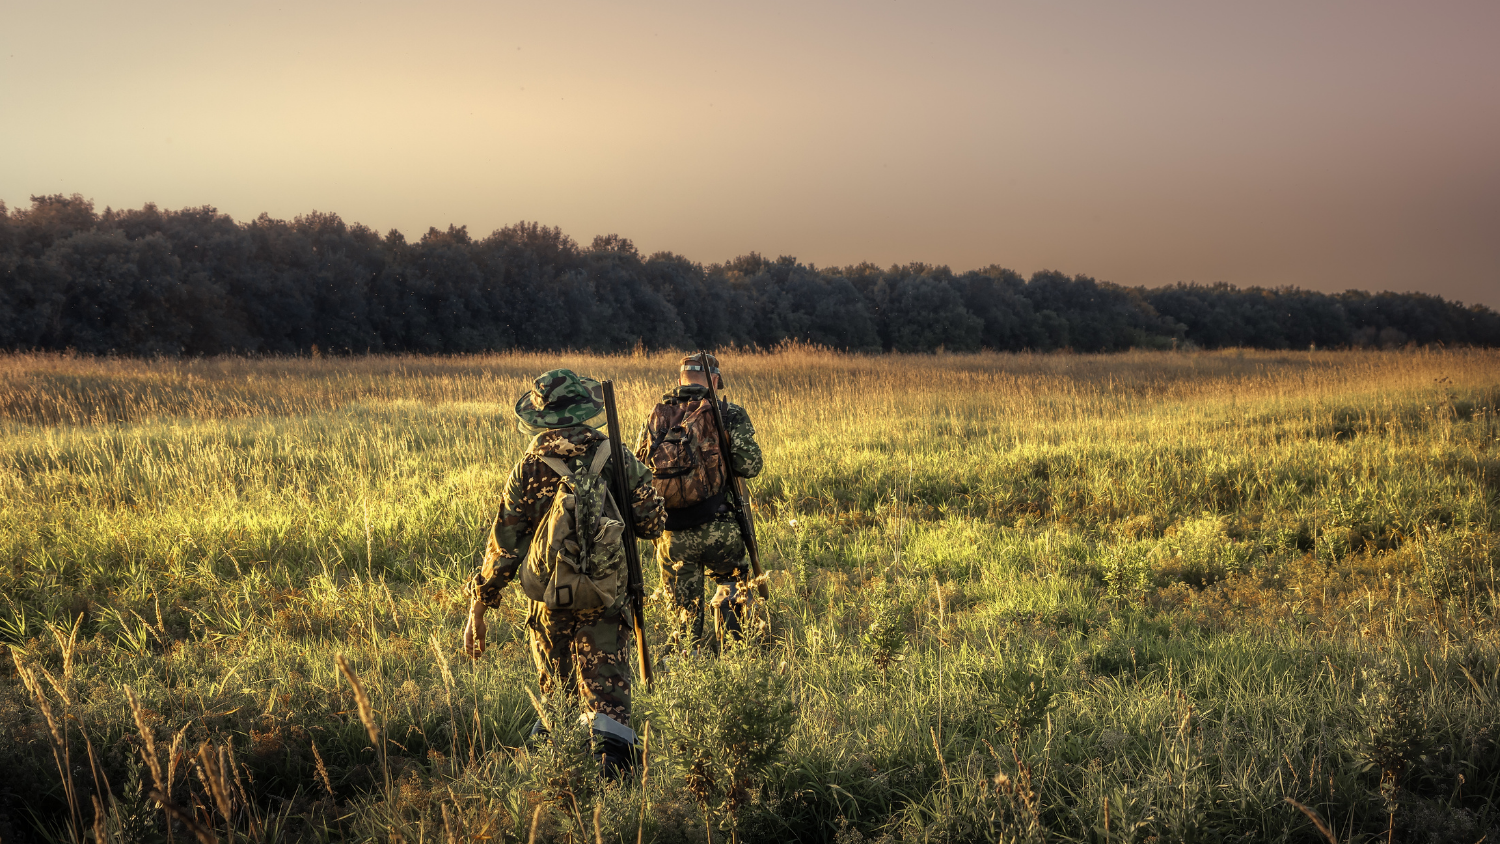 Hunters moving through a thick grass field